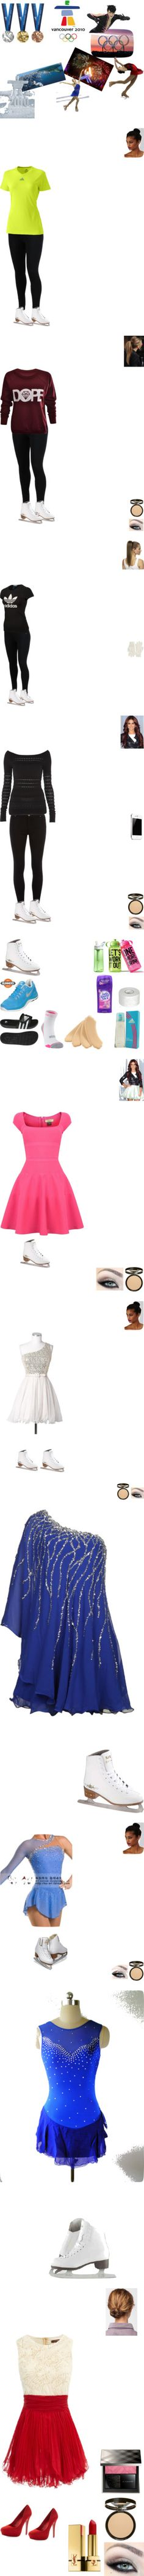 """""""Figure Skating"""" by cheeks24 ❤ liked on Polyvore"""